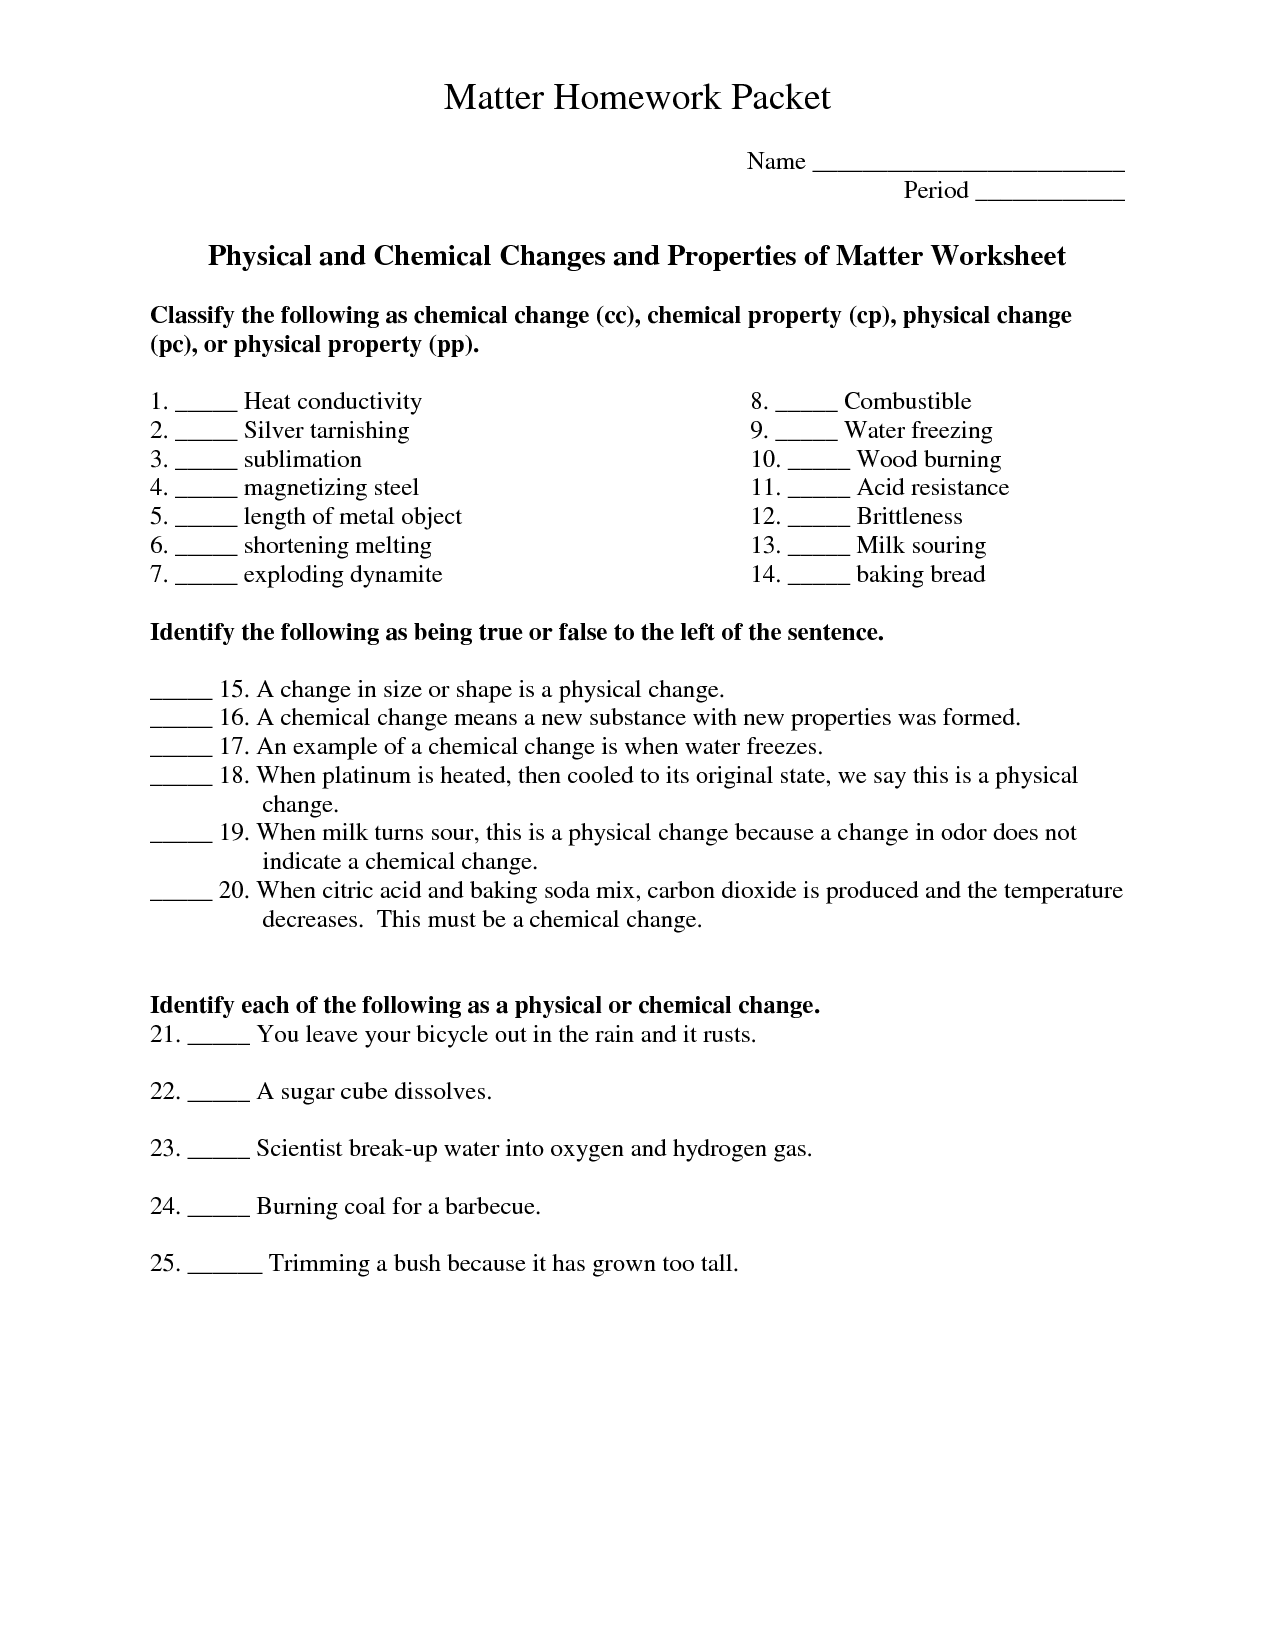 Section 1 Composition Of Matter Worksheet Answers